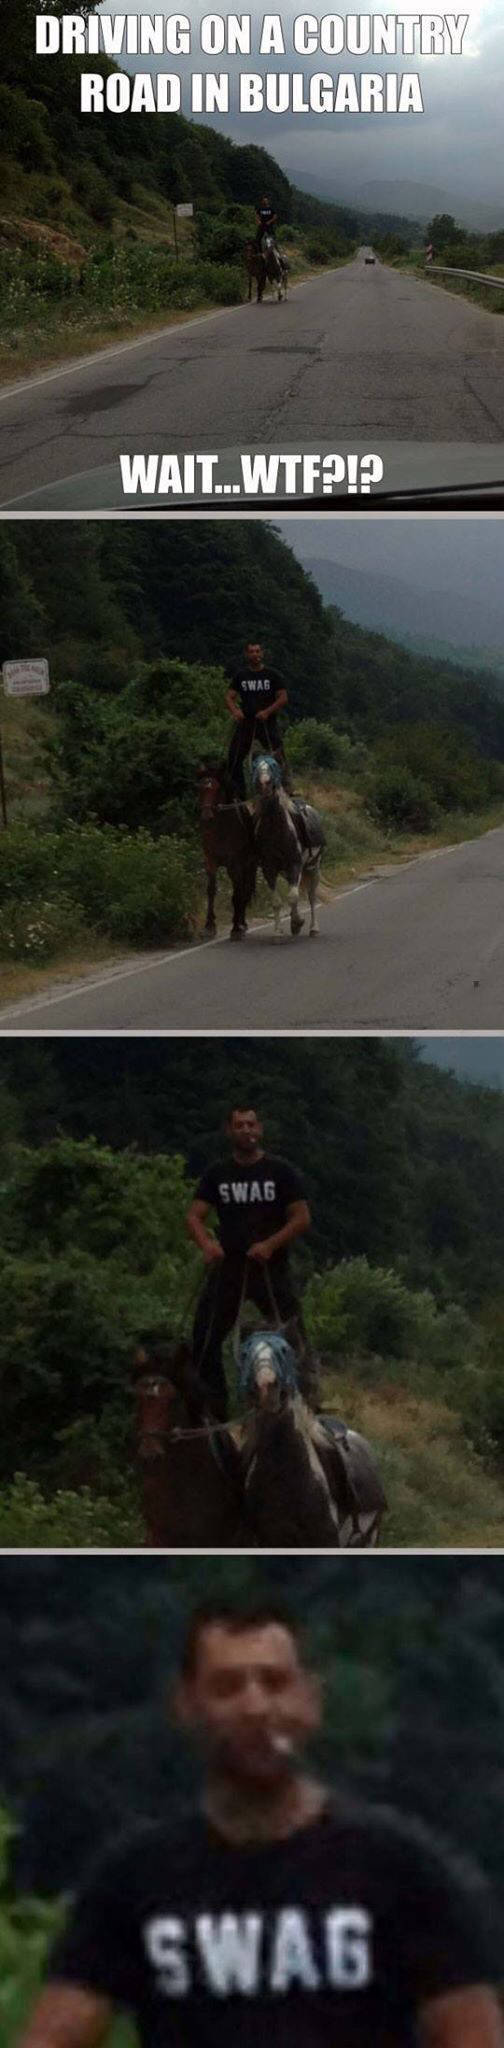 On a country road in Bulgaria, I realized the true definition of